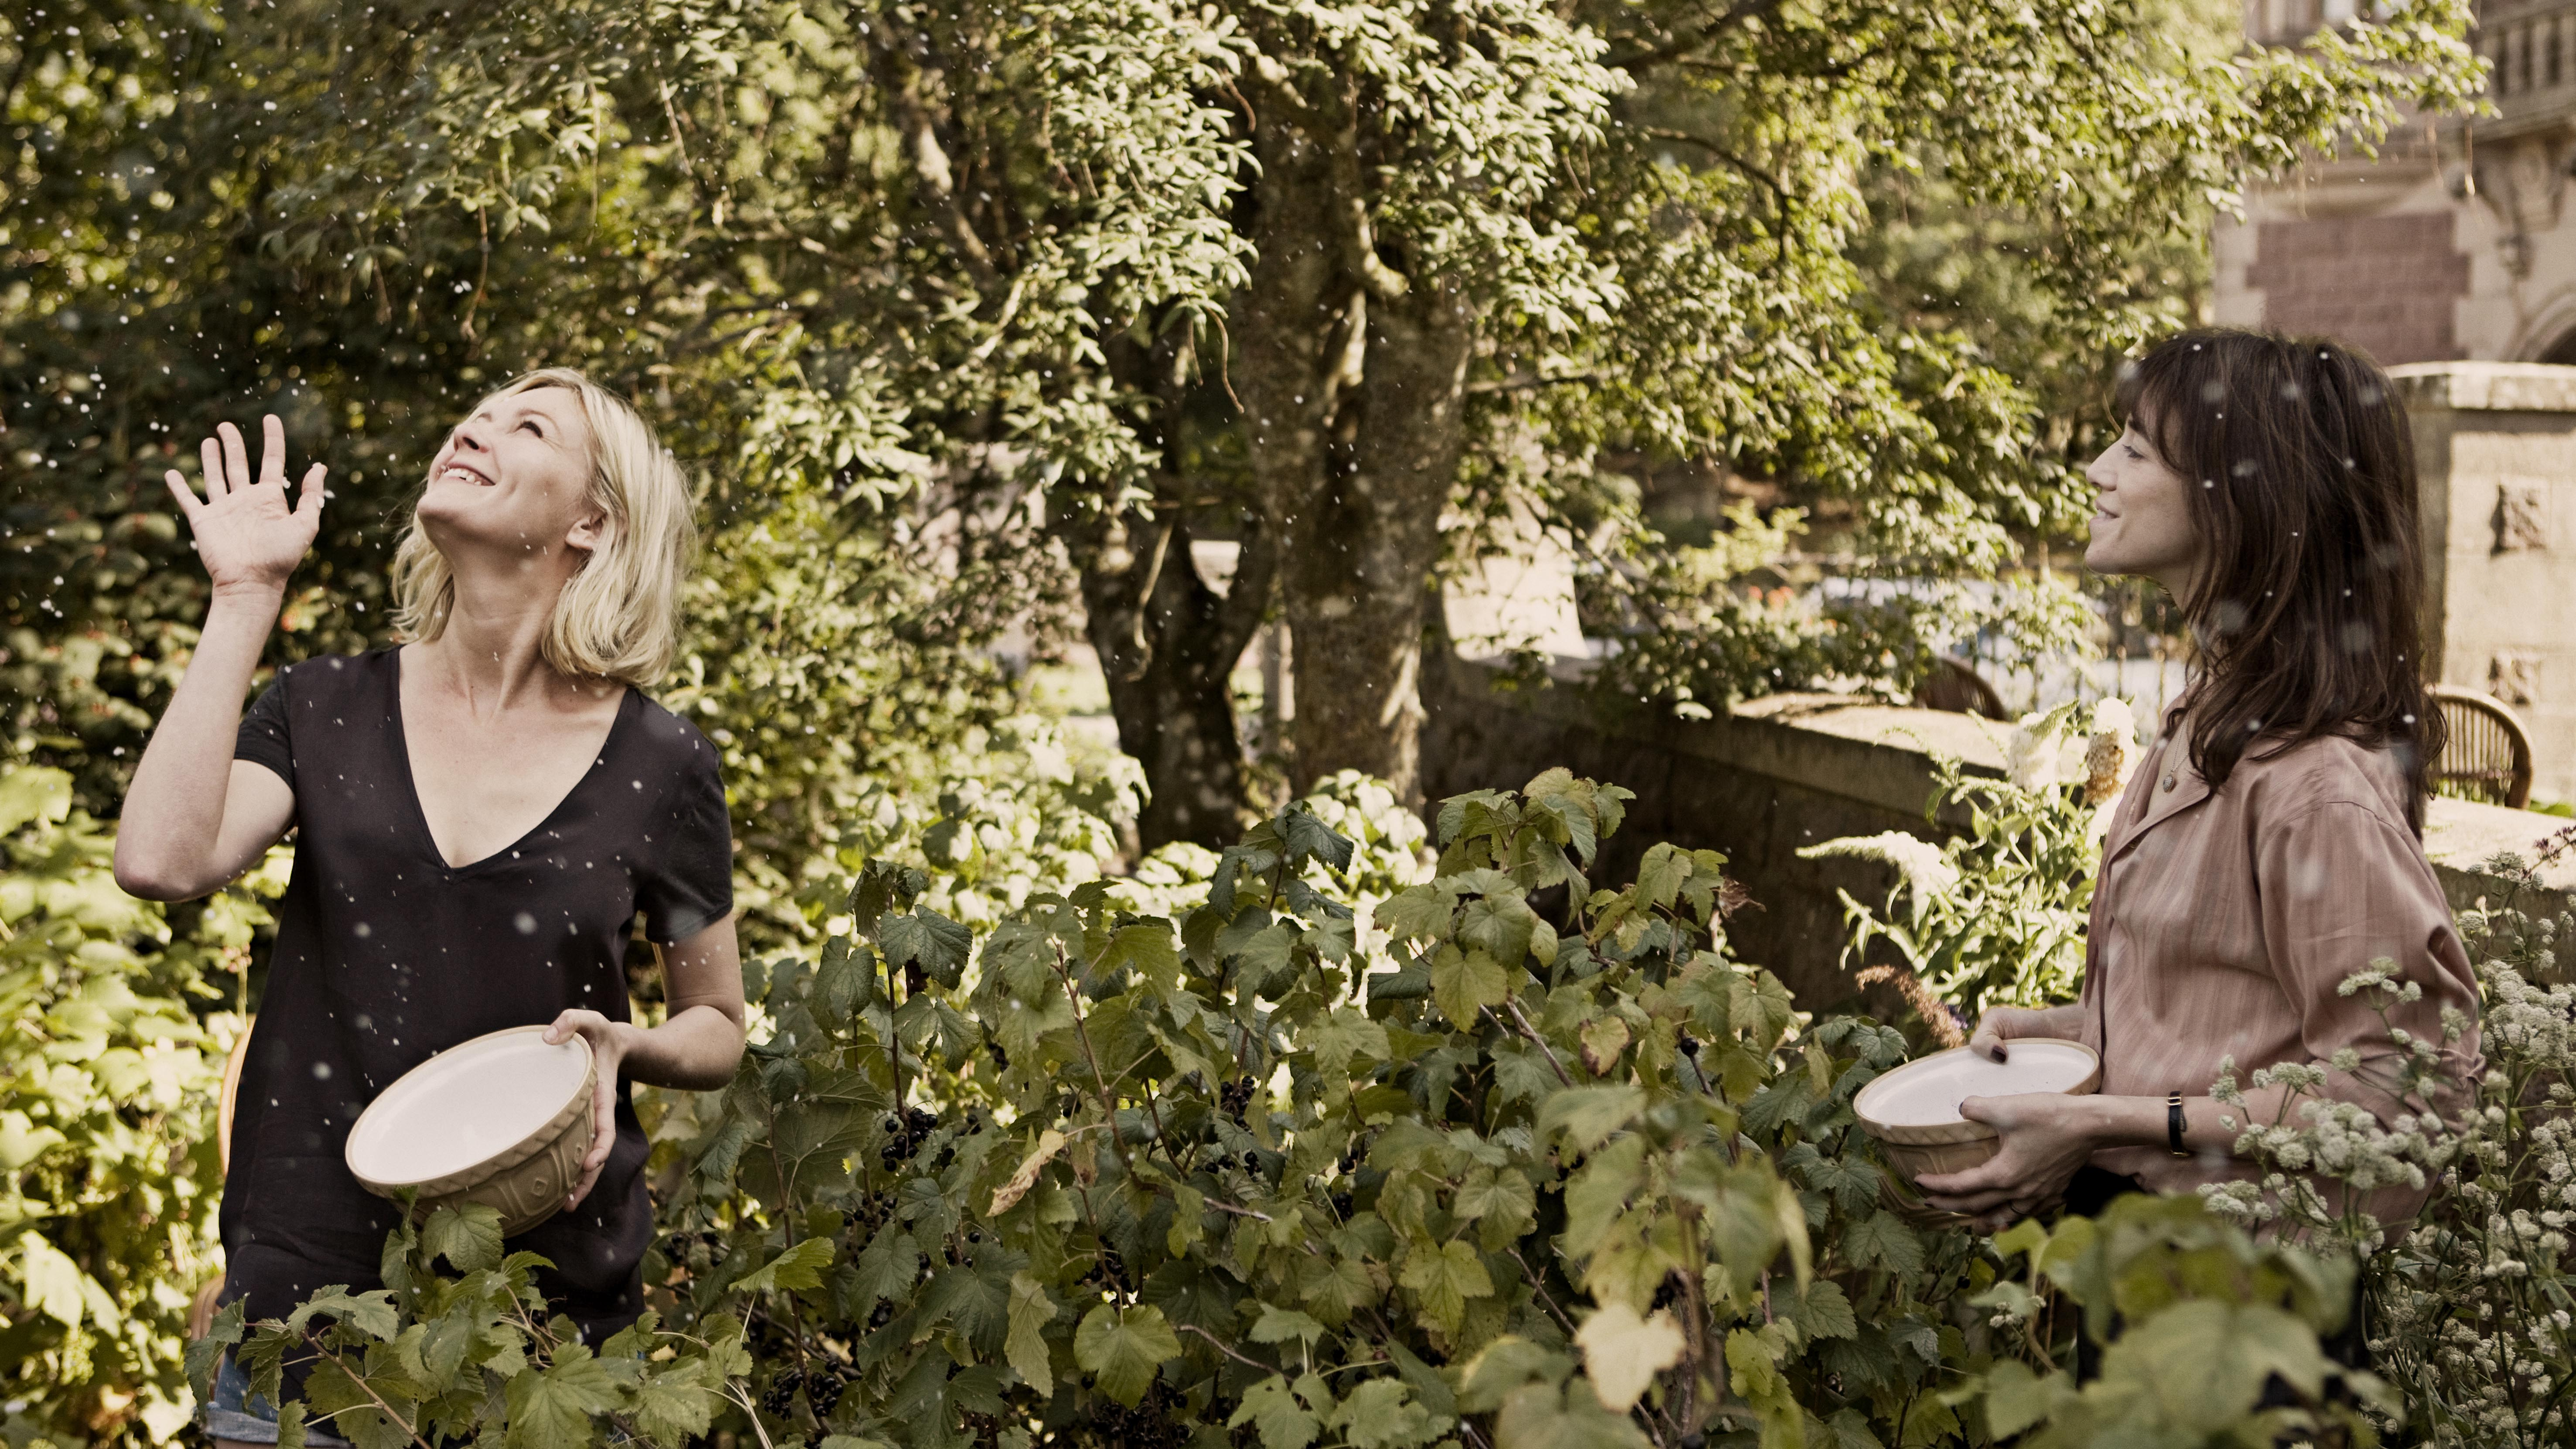 kirsten-dunst-and-charlotte-gainsbourg-in-melancholia-photo-courtesy-of-magnolia-pictures.jpg